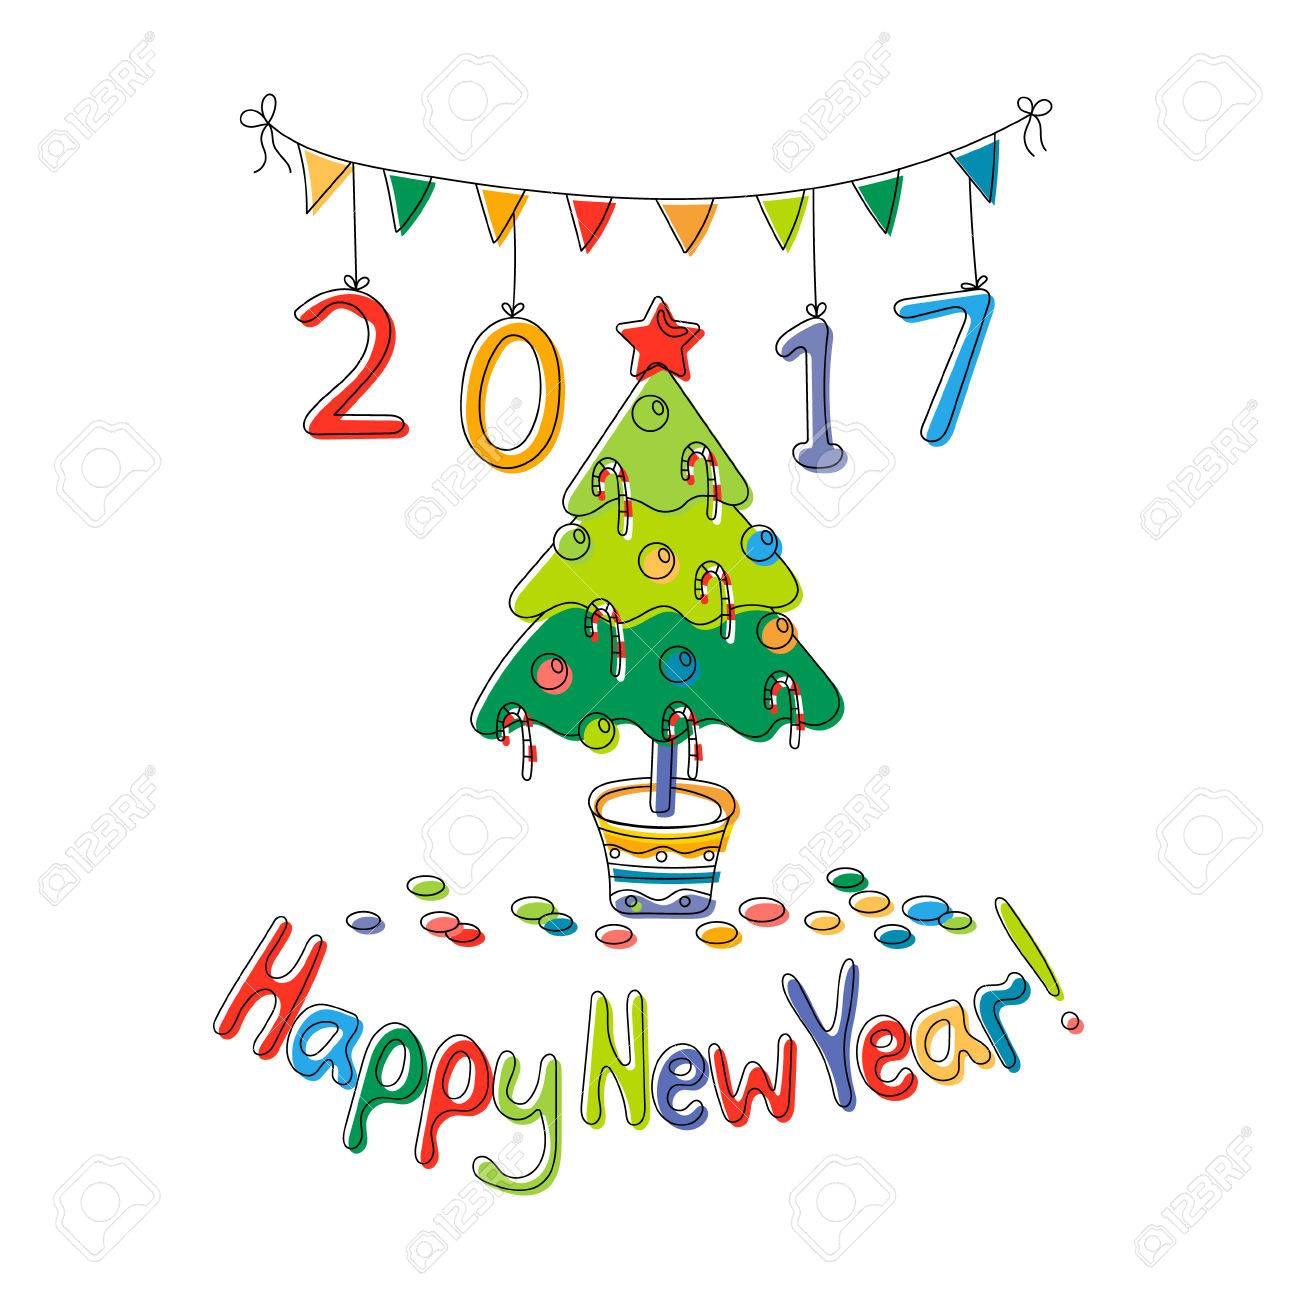 Happy New Year Greeting Card With Fir Cartoon Style Hand Draw